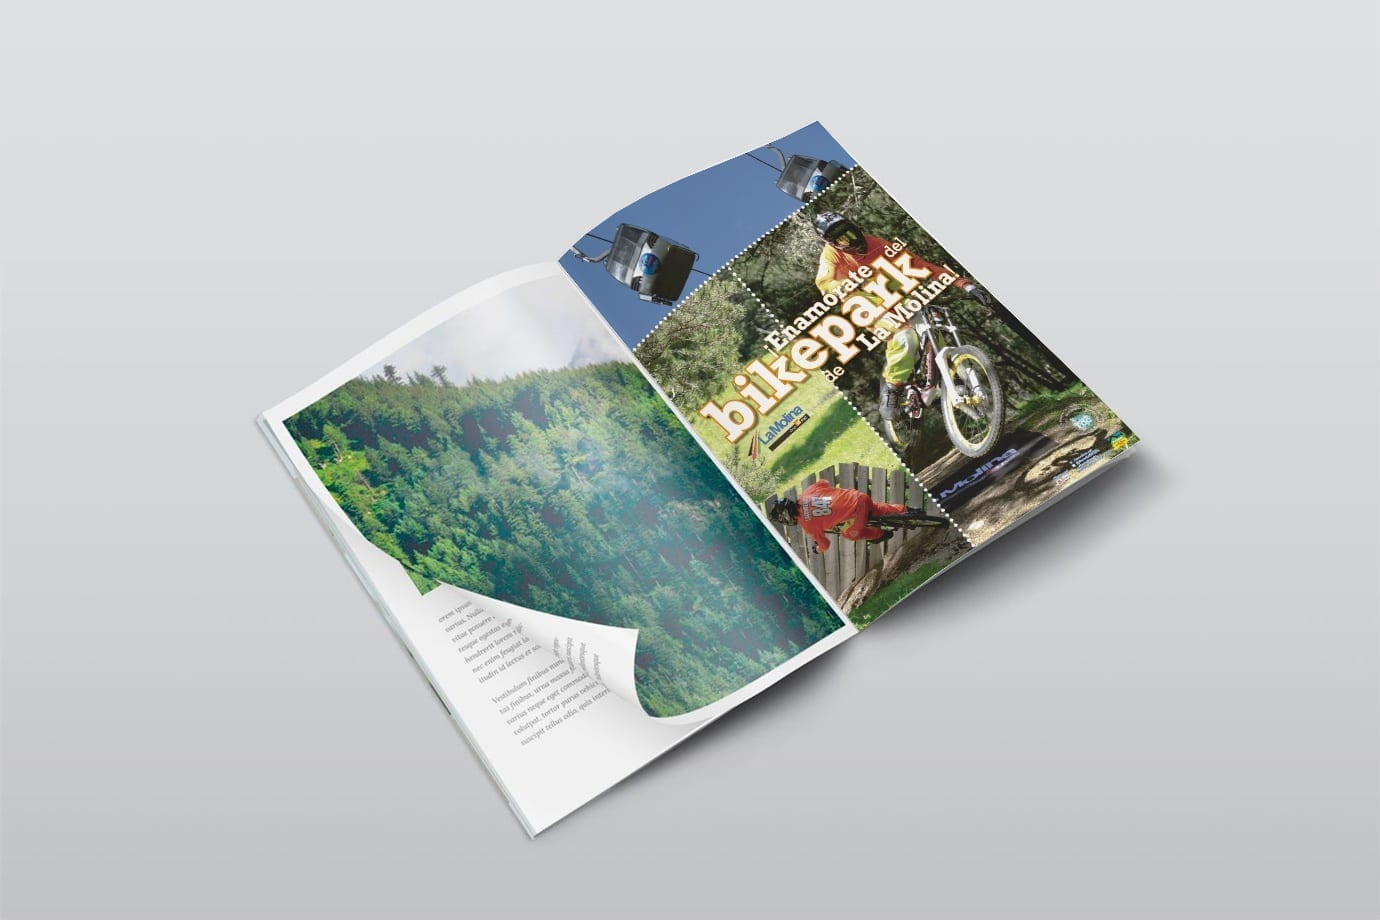 isometric-magazine-mockup-2-images